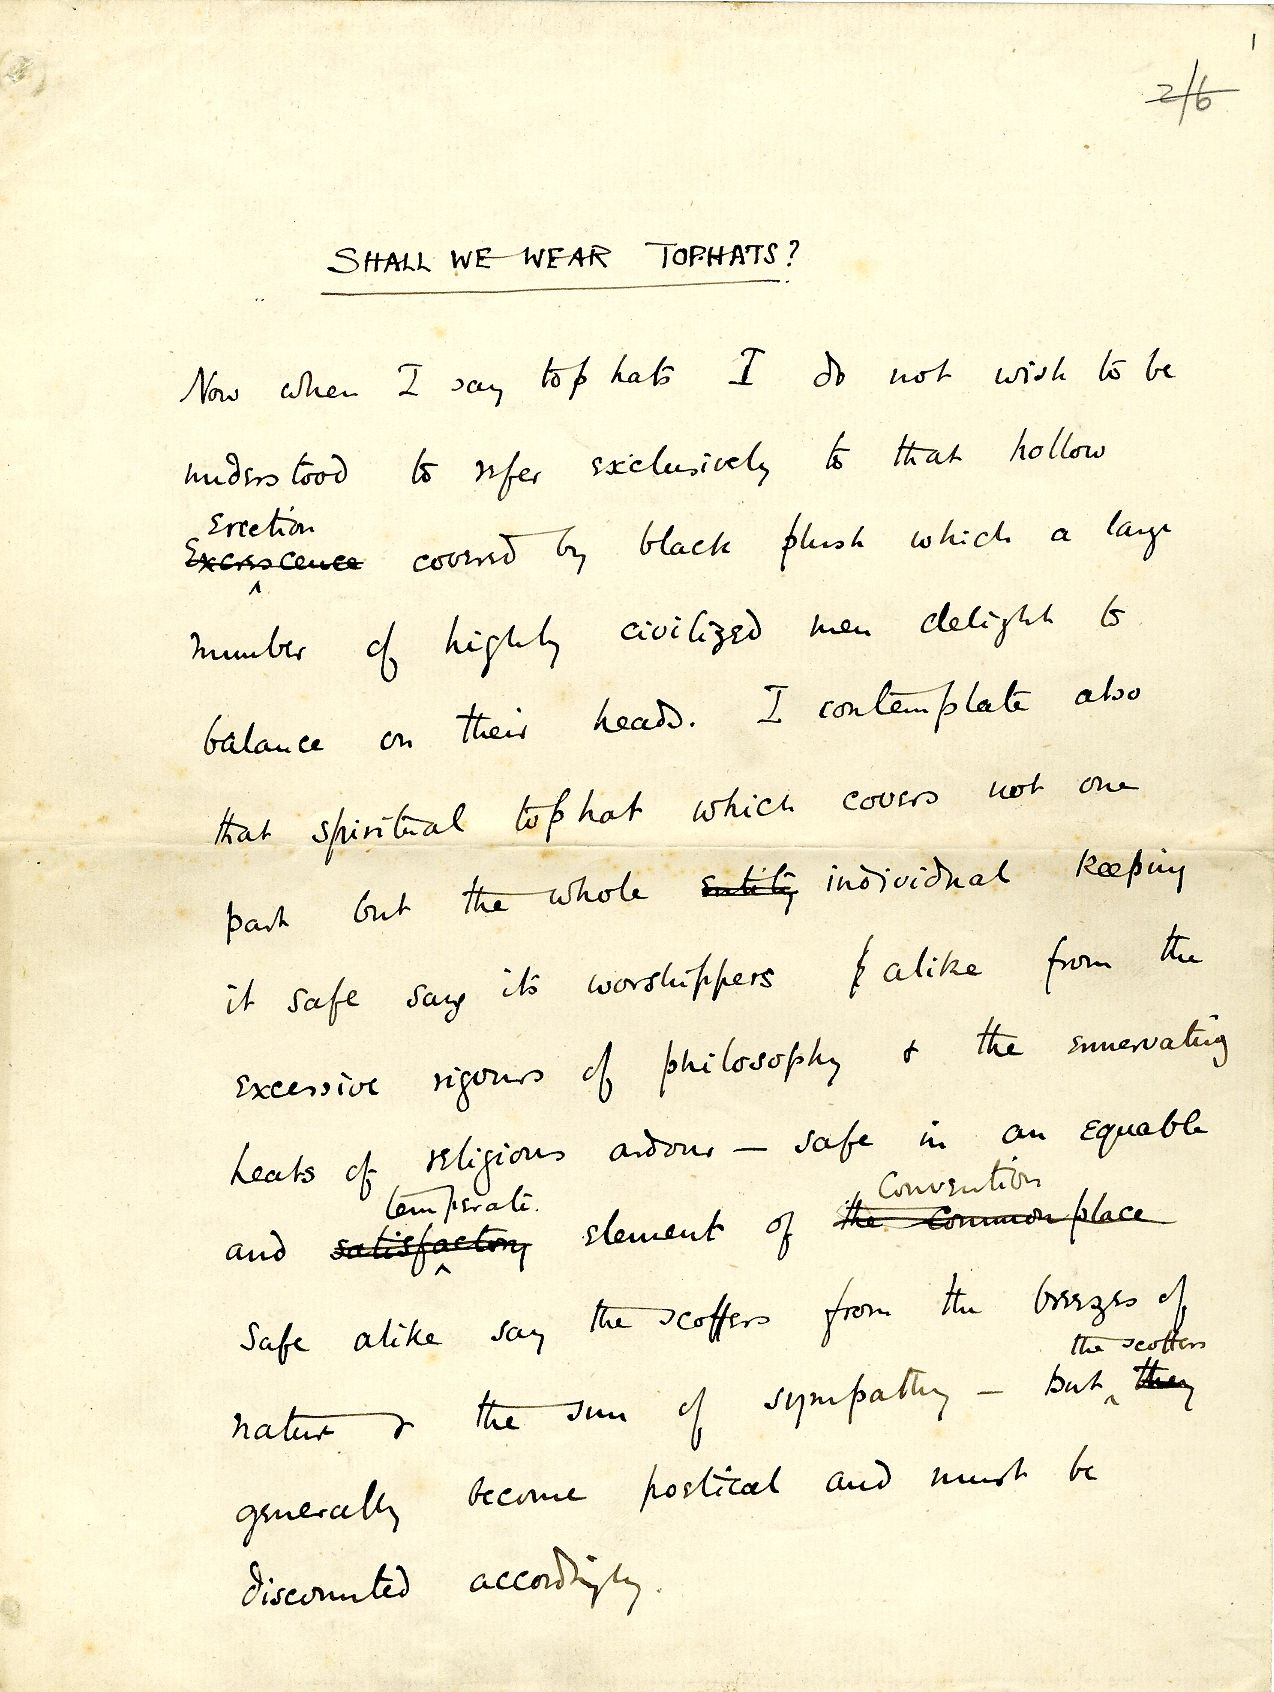 First page of 'Shall we wear top hats?', read by Fry on 6 December 1888. [REF/1/10]